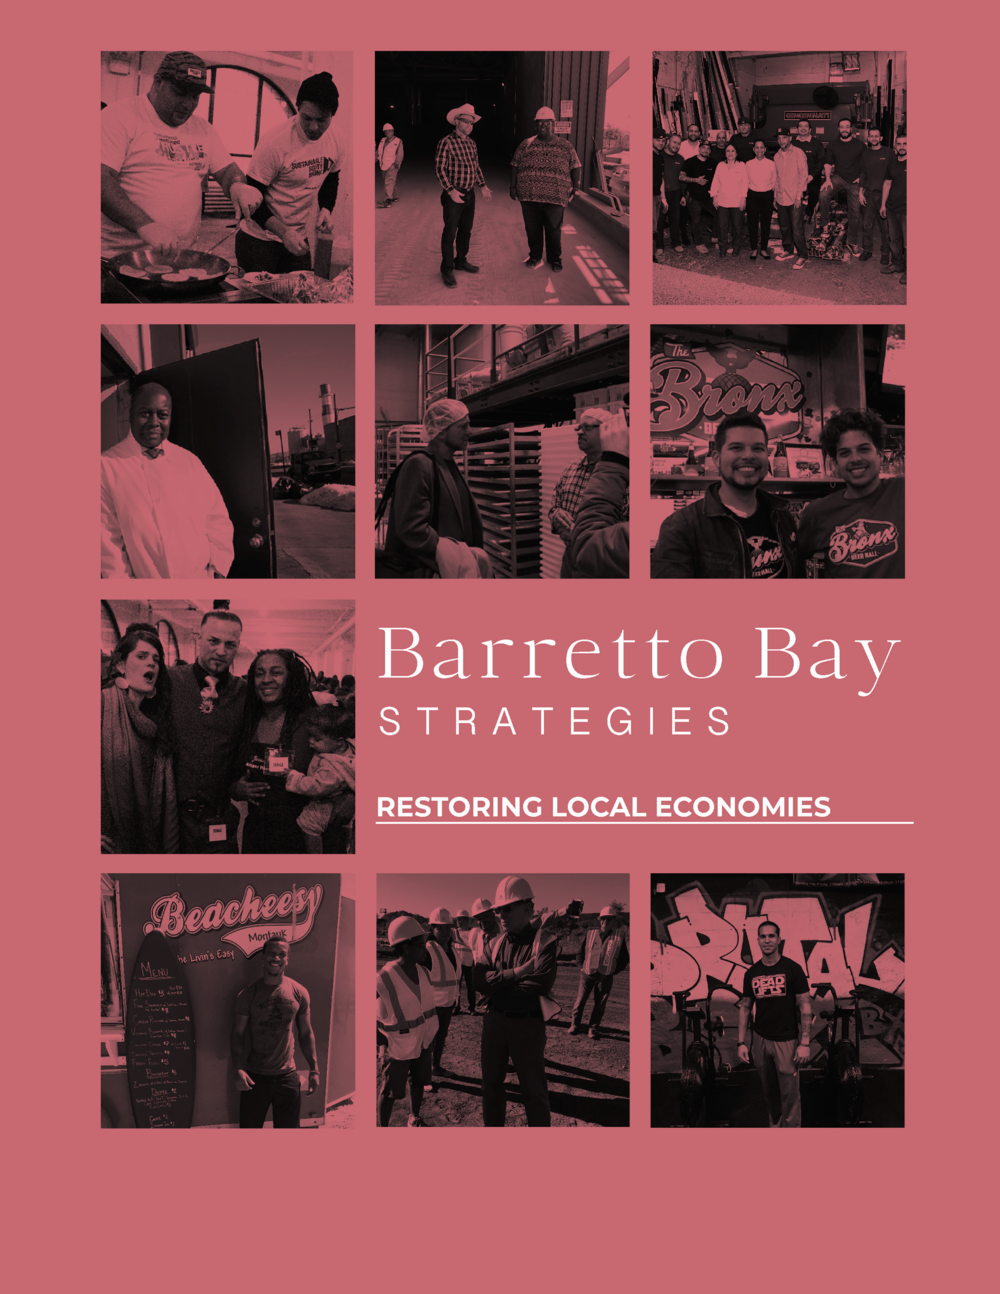 Restoring Local Economies qualifications_2 (1)_Page_01.png